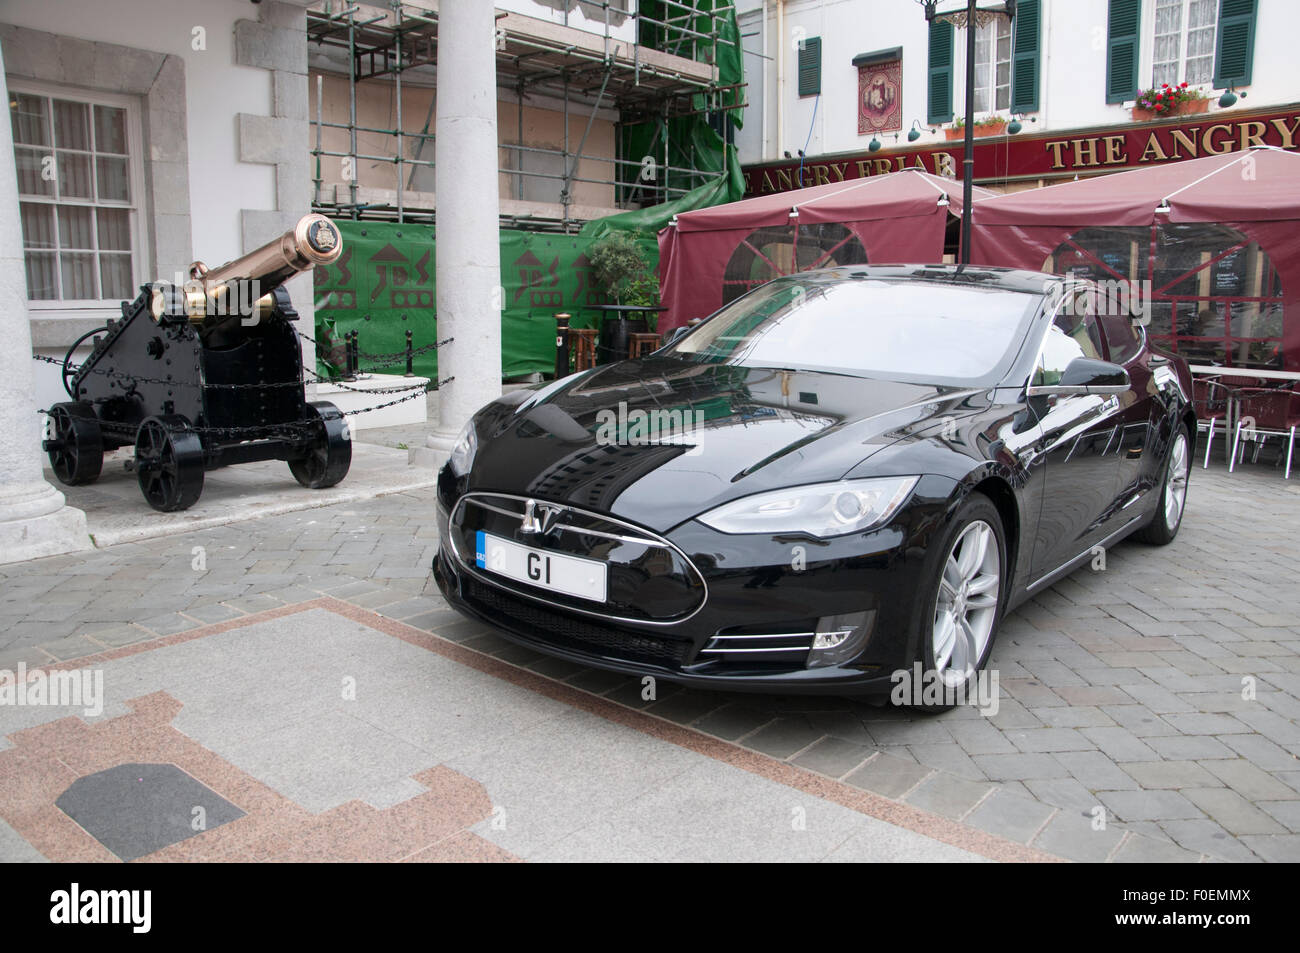 The Governor S Car On The Rock Of Gibraltar At The Entrance To The